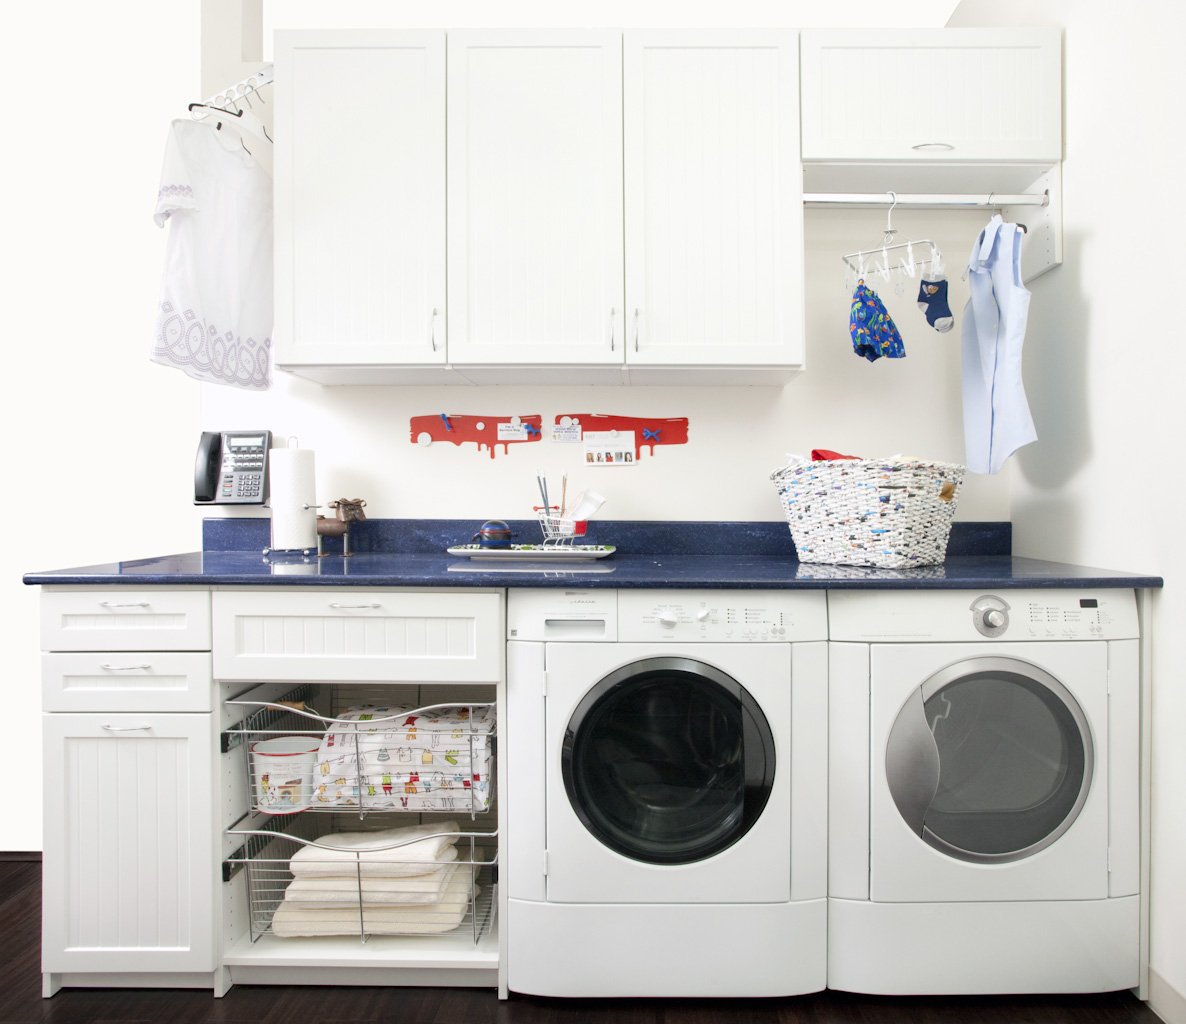 4 Tips for Designing a Functional Laundry Room